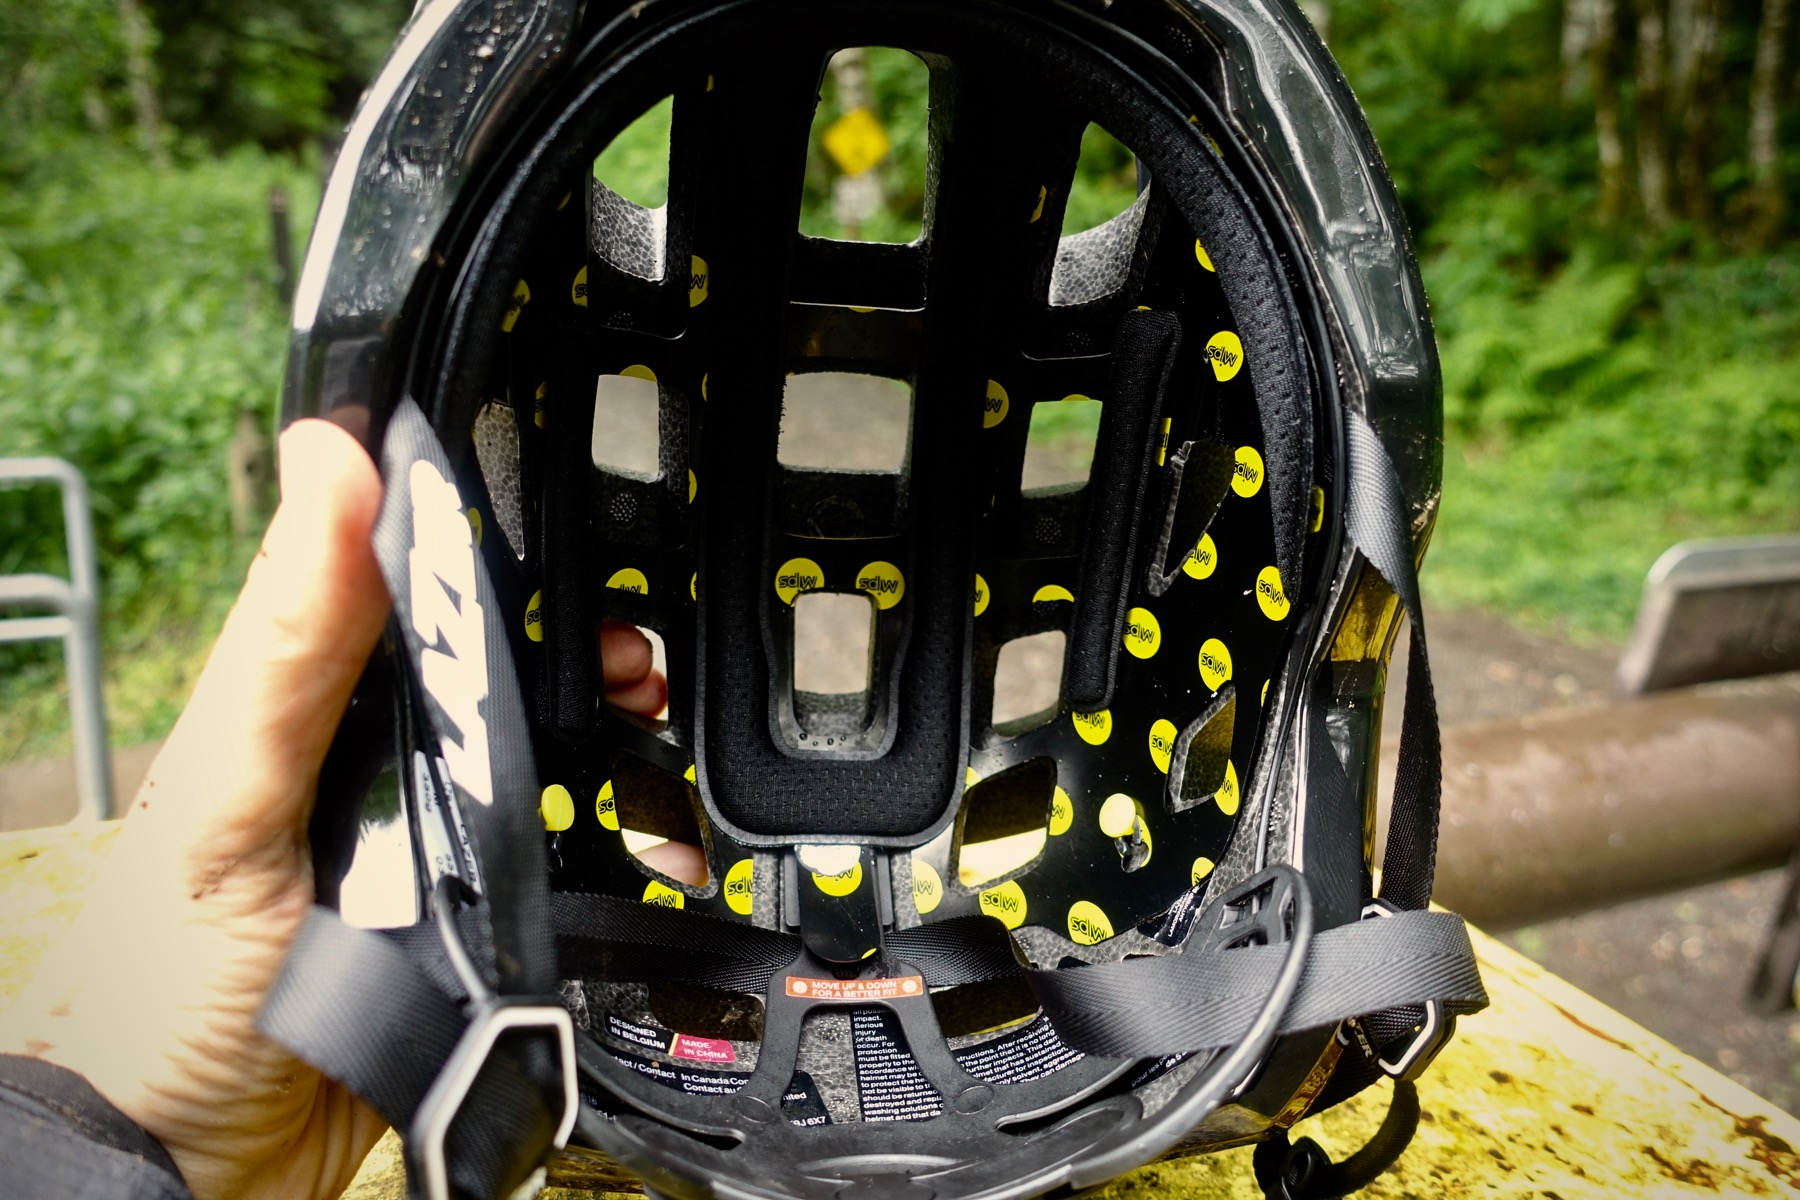 Virginia Tech Tested and Rated the Safest Bike Helmets, Finds MIPS is the Best for Reducing Concussions - Singletracks Mountain Bike News